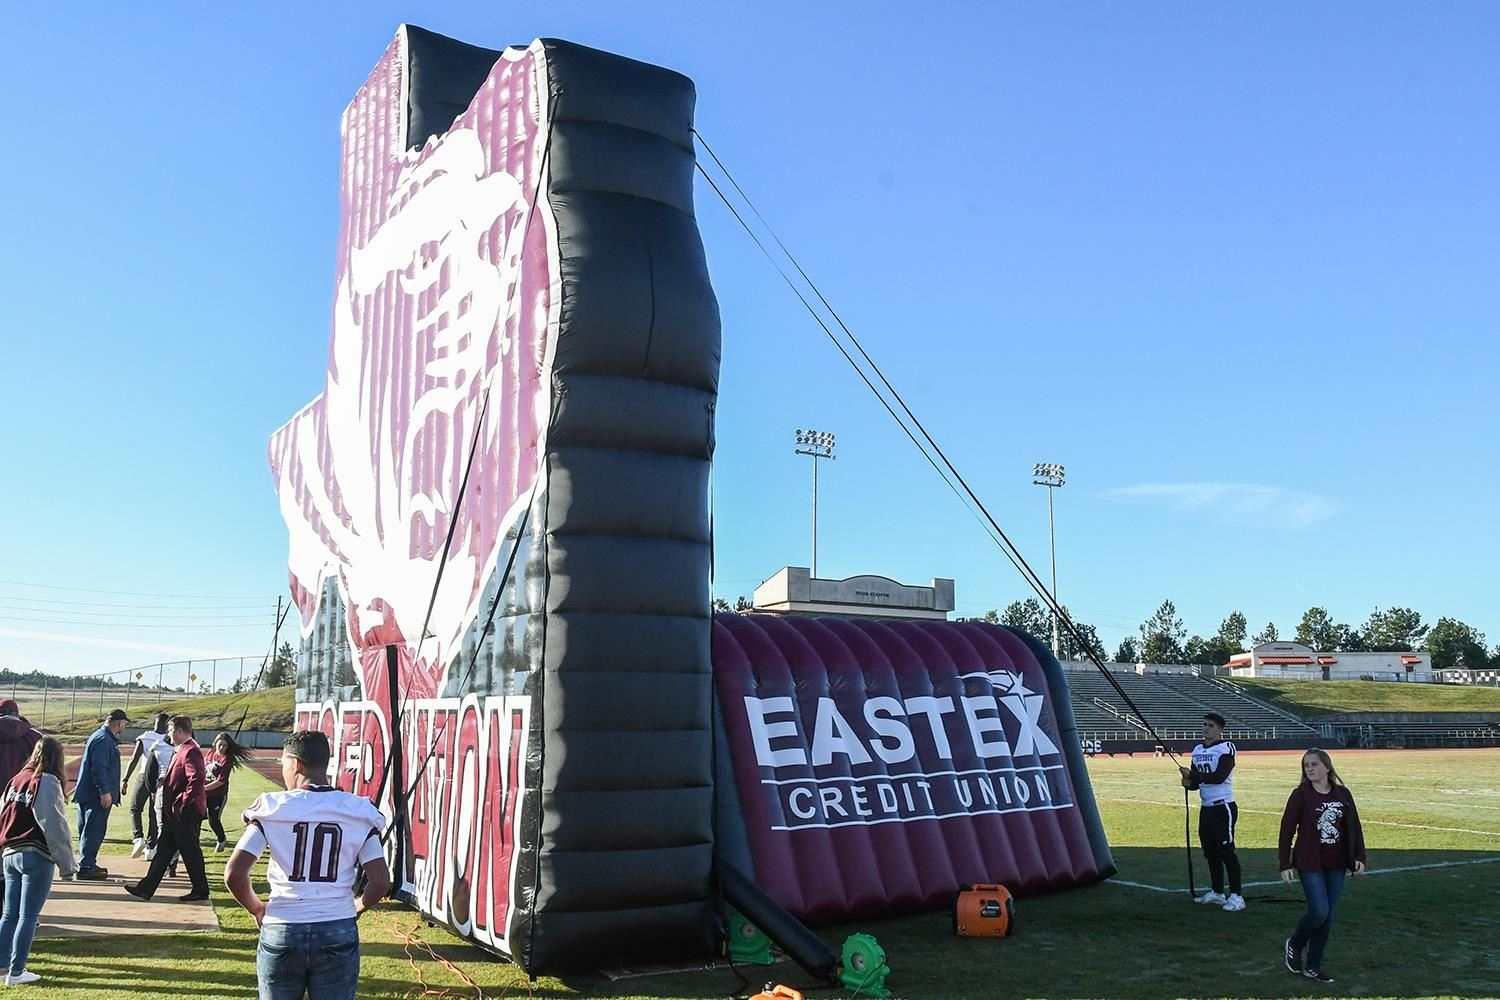 Tiger tunnel displaying Eastex Credit Union logo